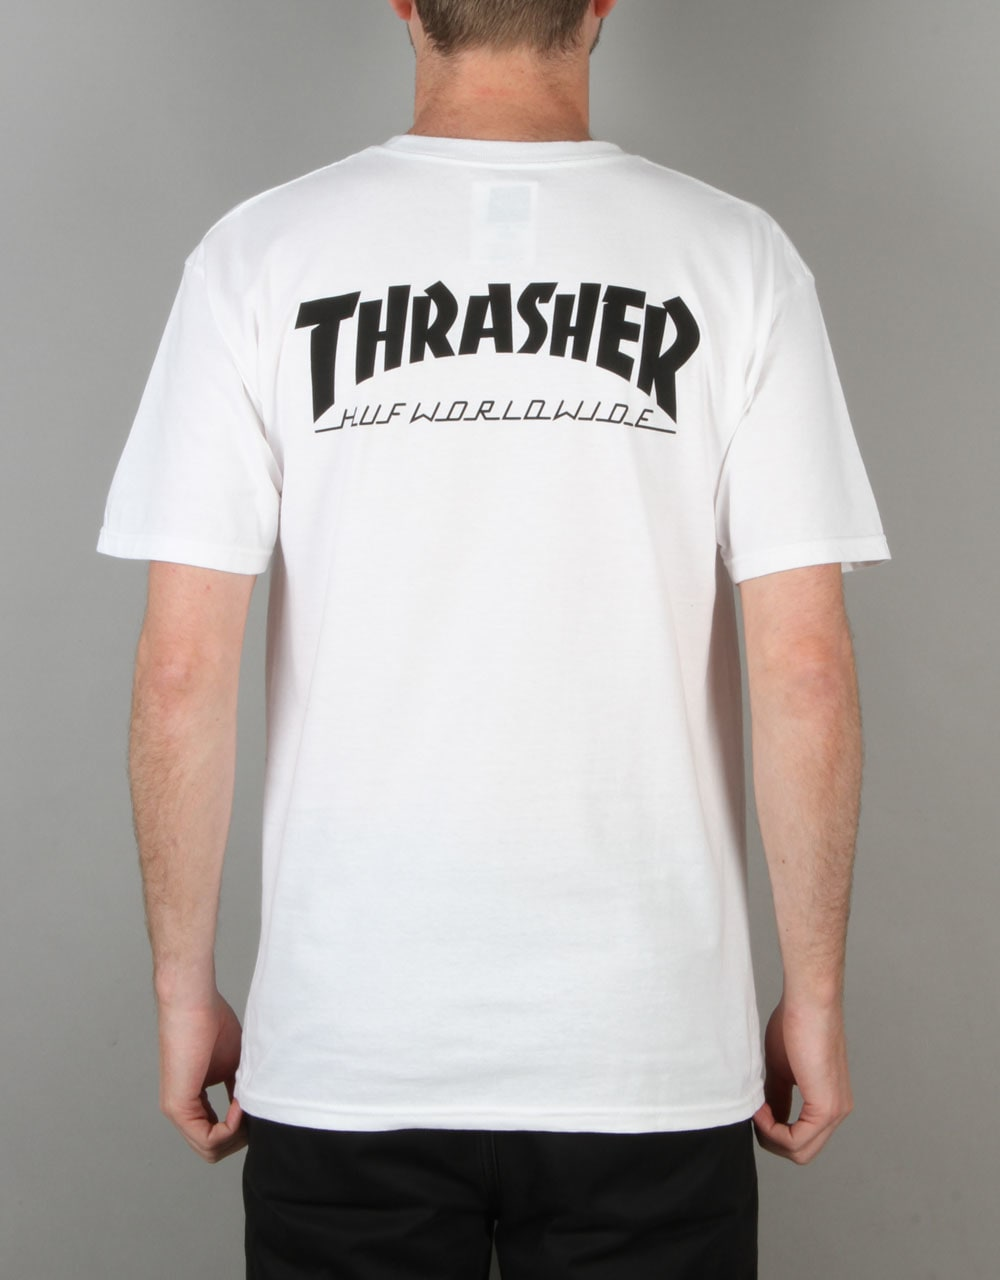 Huf x thrasher classic h t shirt white backprint t for The red t shirt company